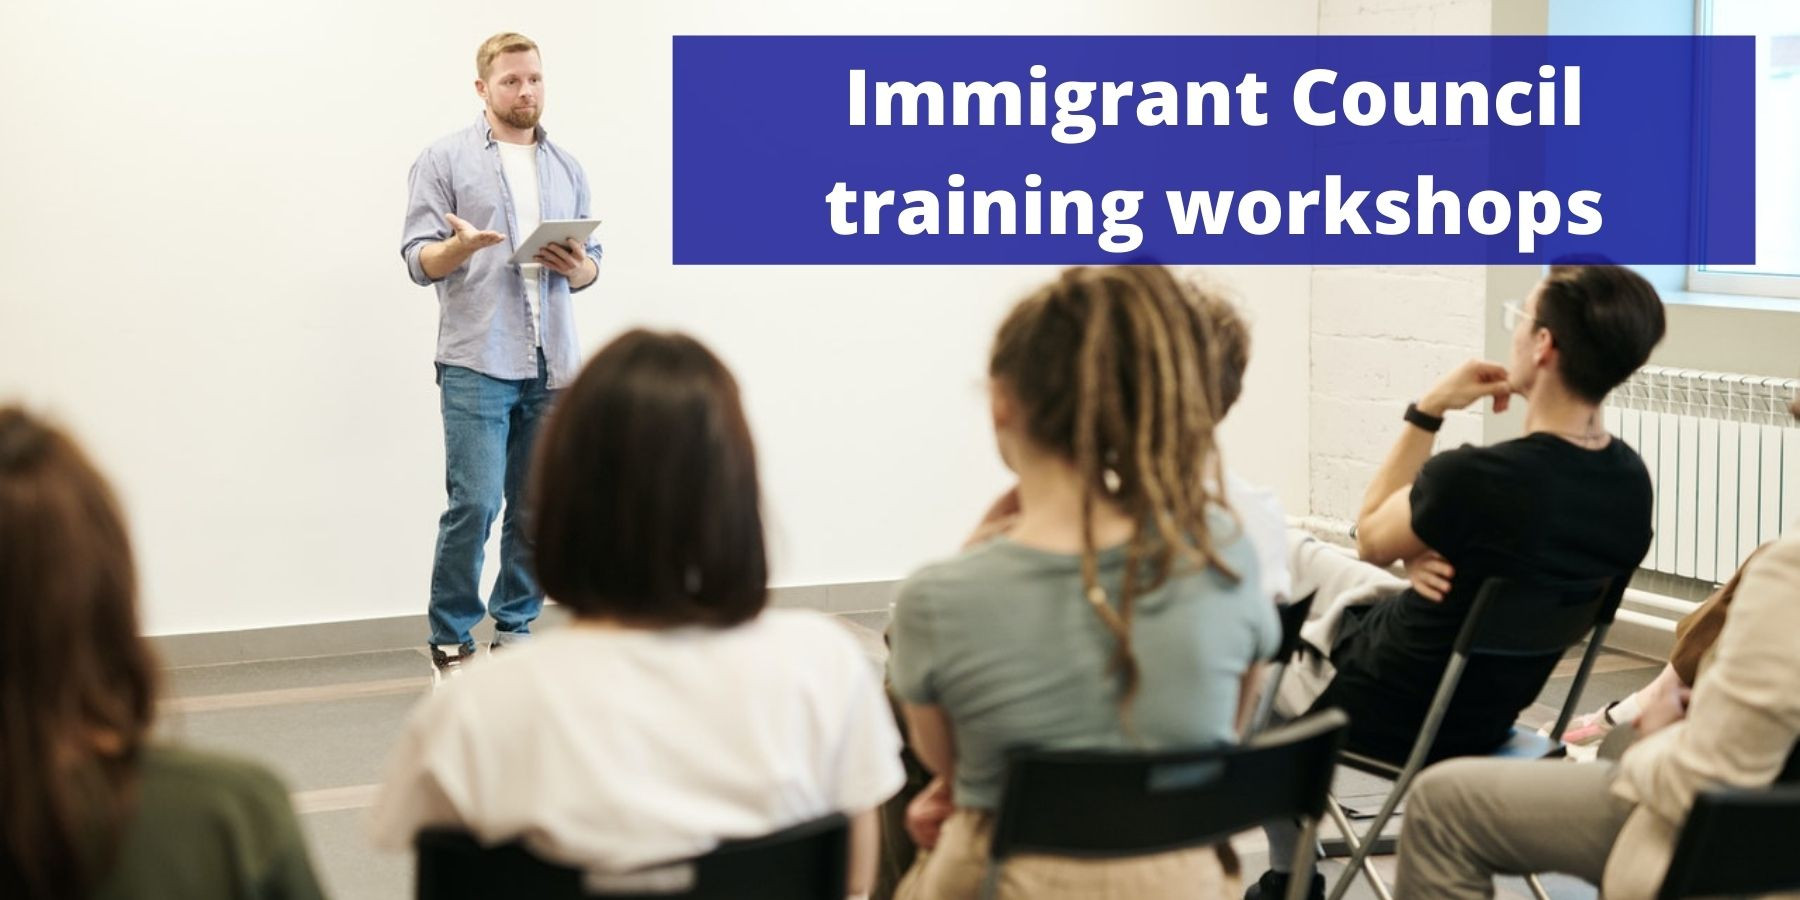 Immigrant Council training workshops